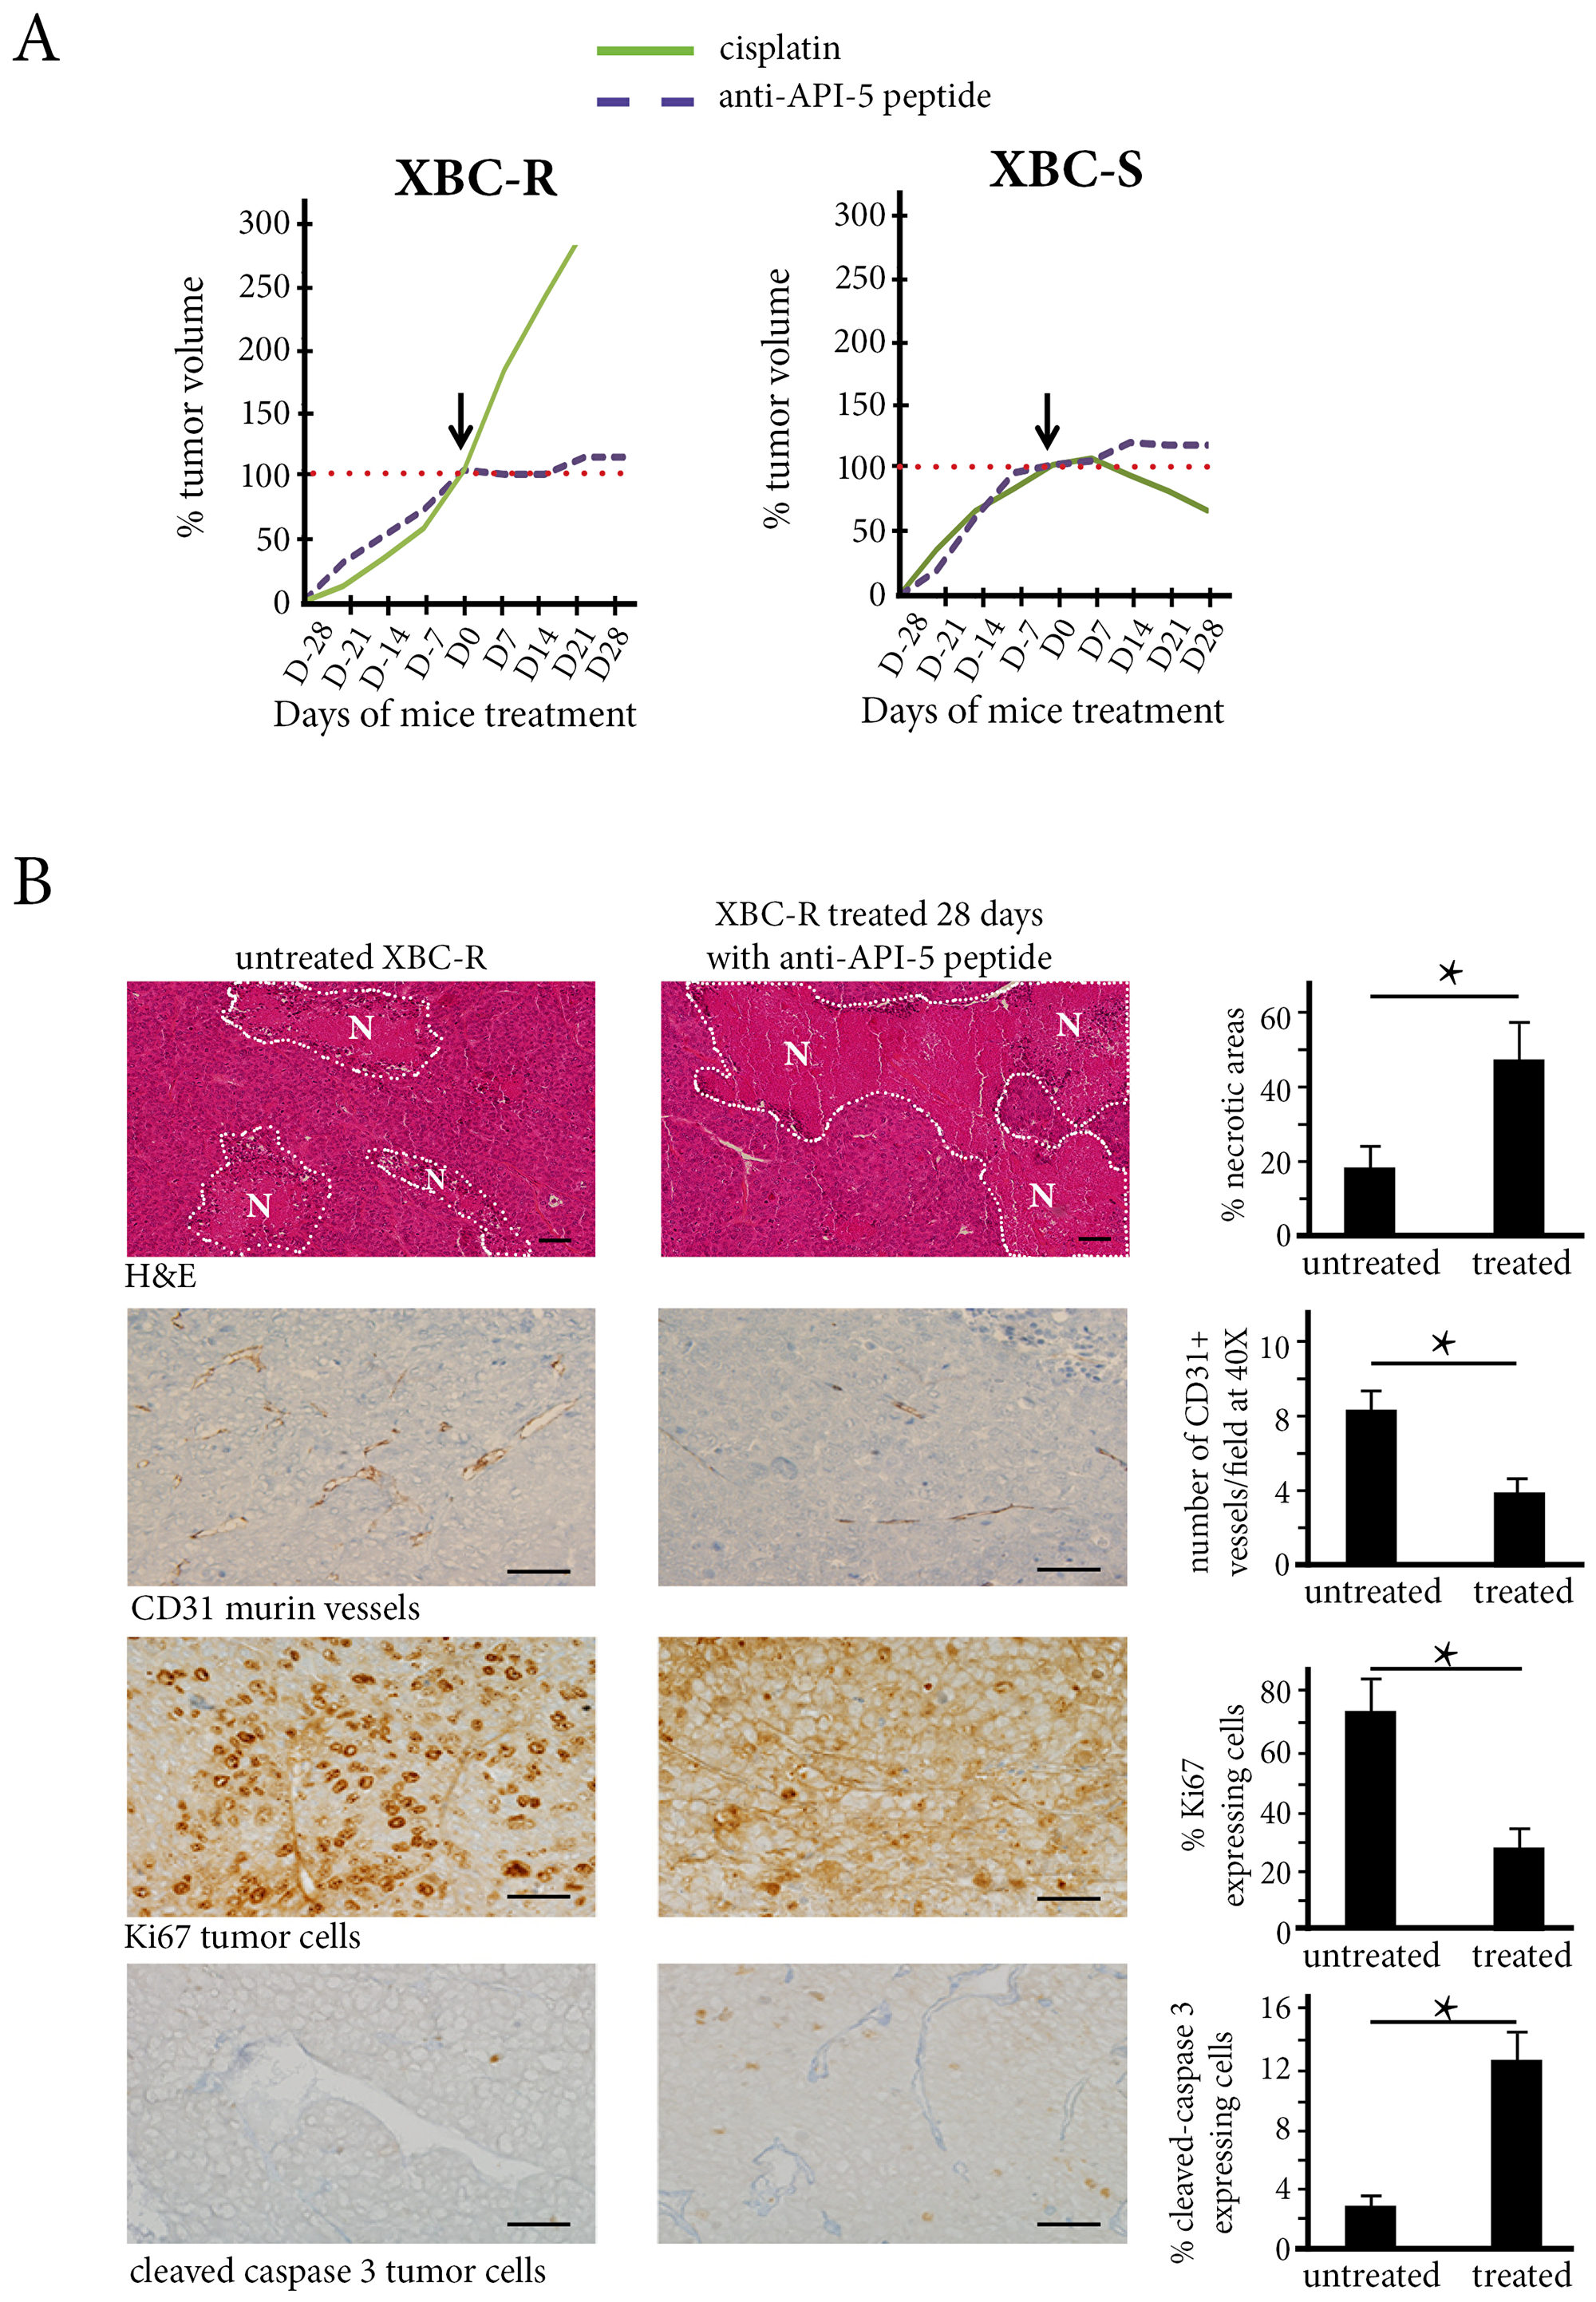 The in vivo effect of Cisplatin and API-5 peptide in XBC-R (left panel) and XBC-S (right panel).